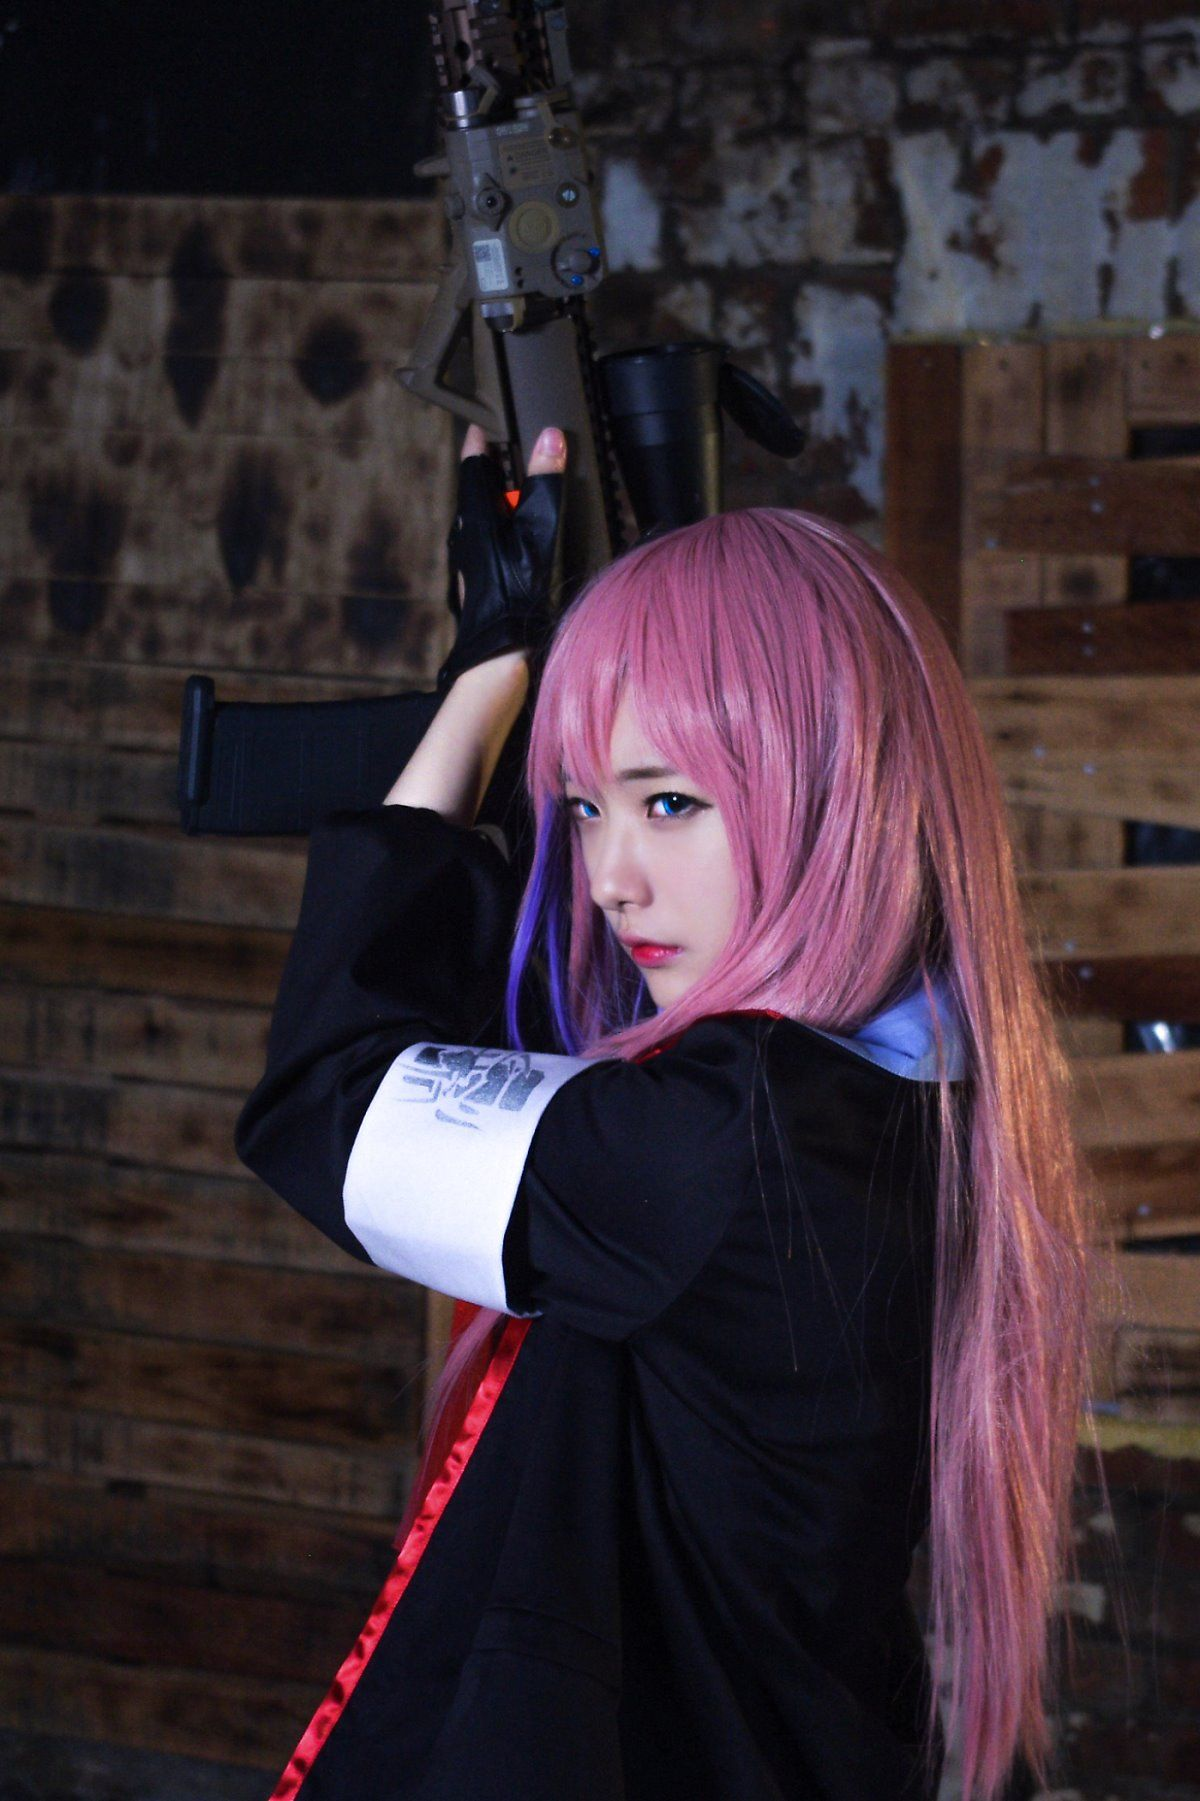 girl front cool sik girl st ar 15 naver post cosplay girls